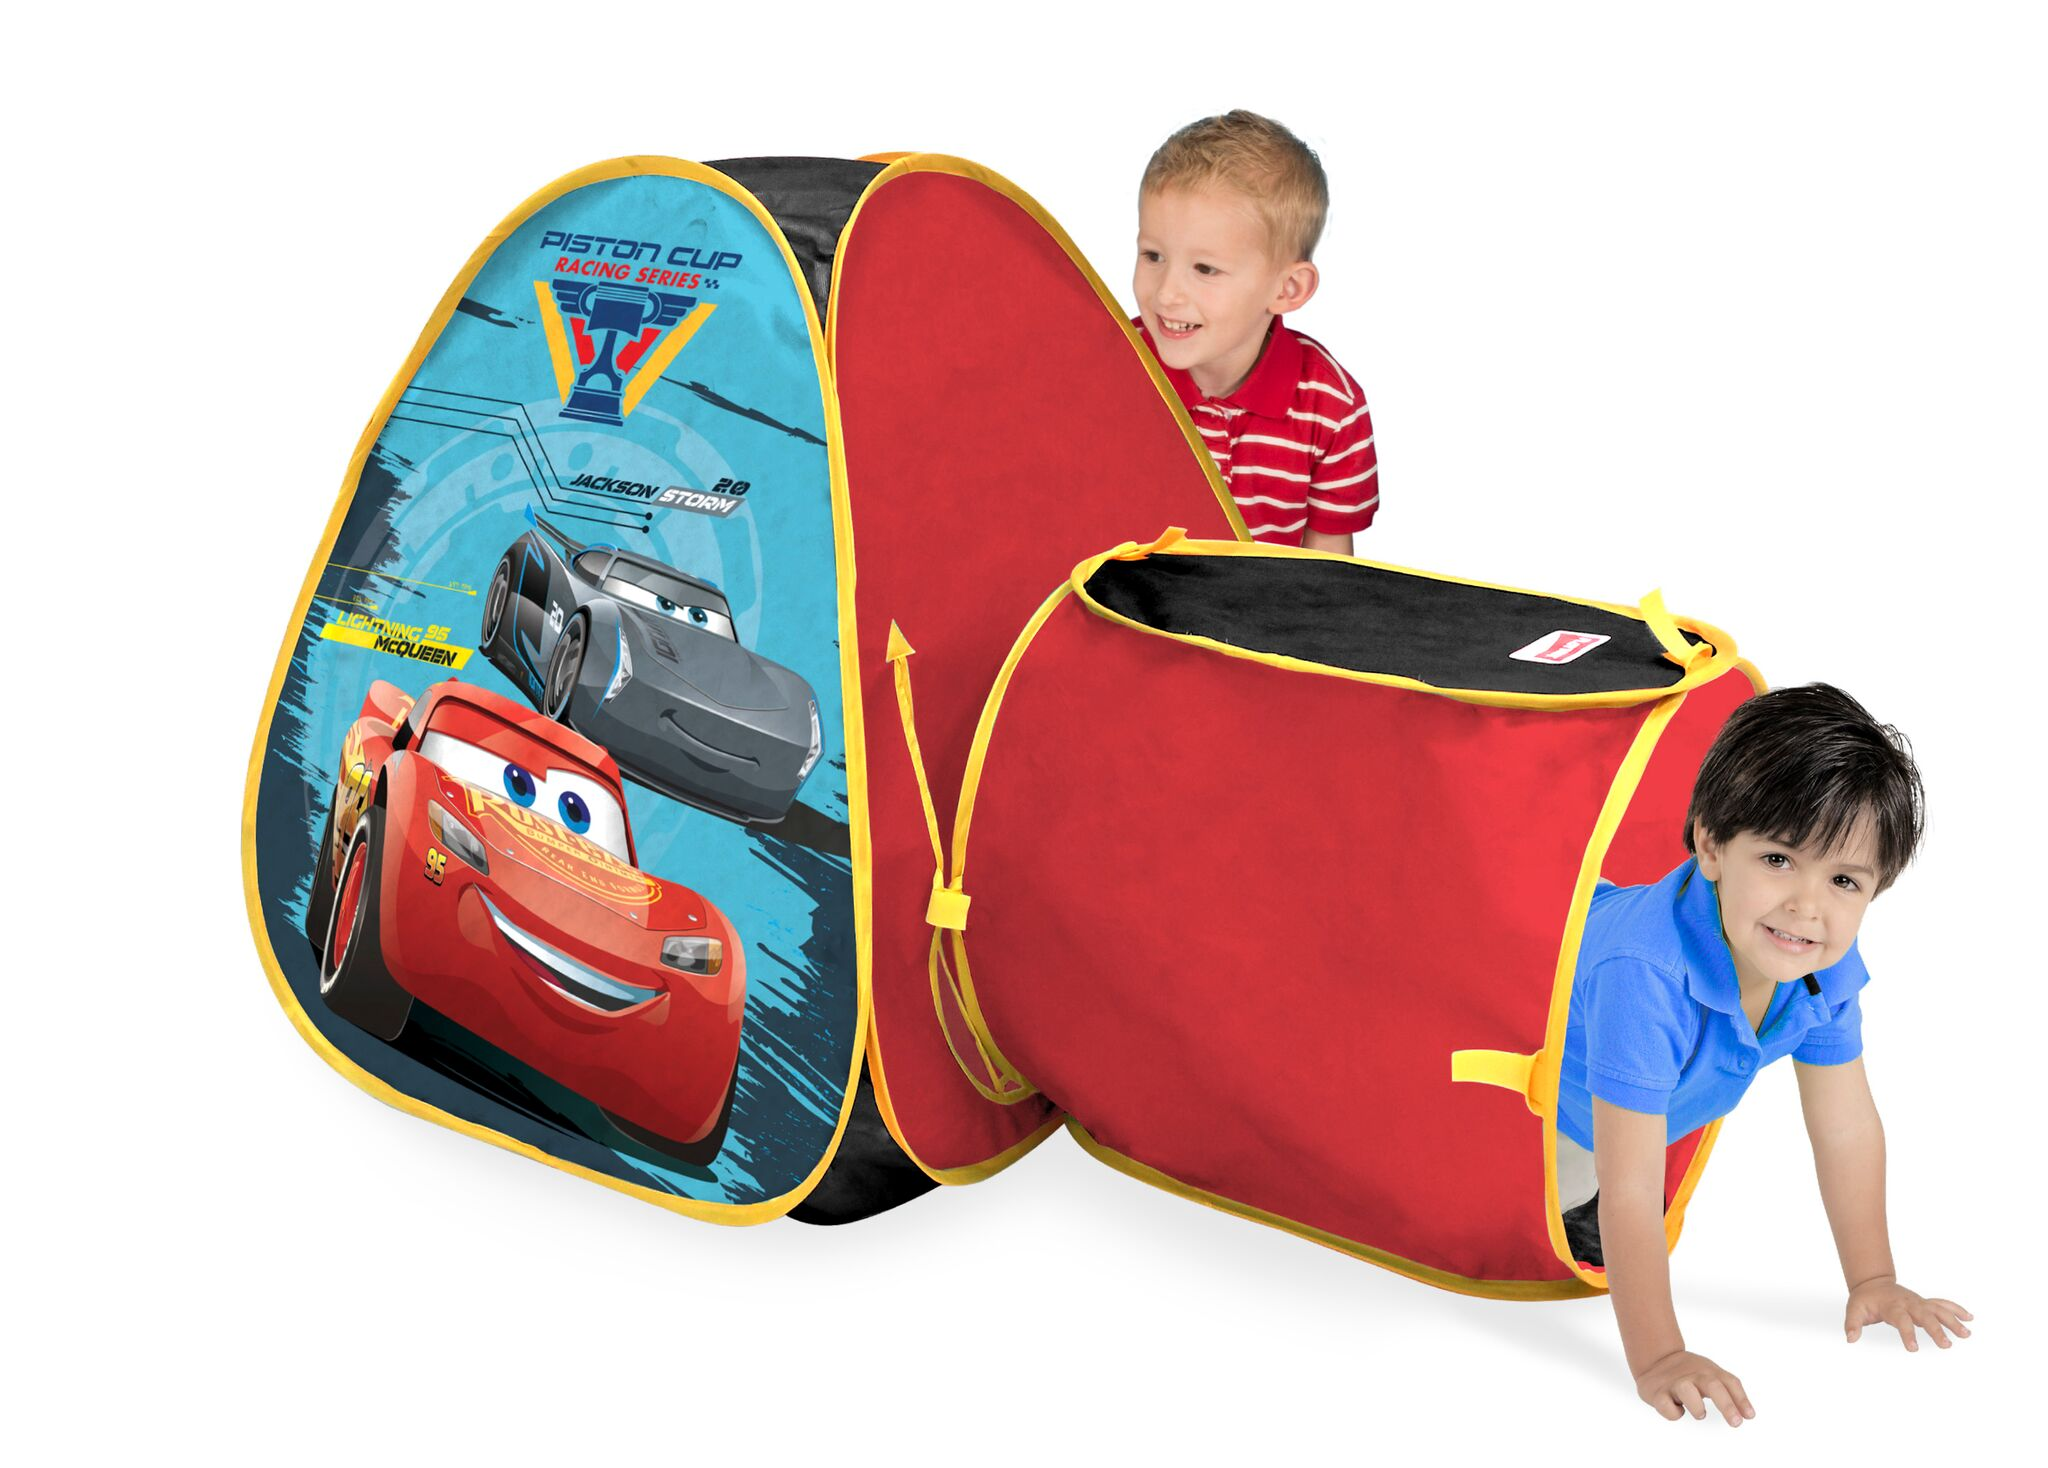 Playhut Cars 3 Hide About Play Tent  sc 1 st  Walmart & Playhut Cars 3 Hide About Play Tent - Walmart.com